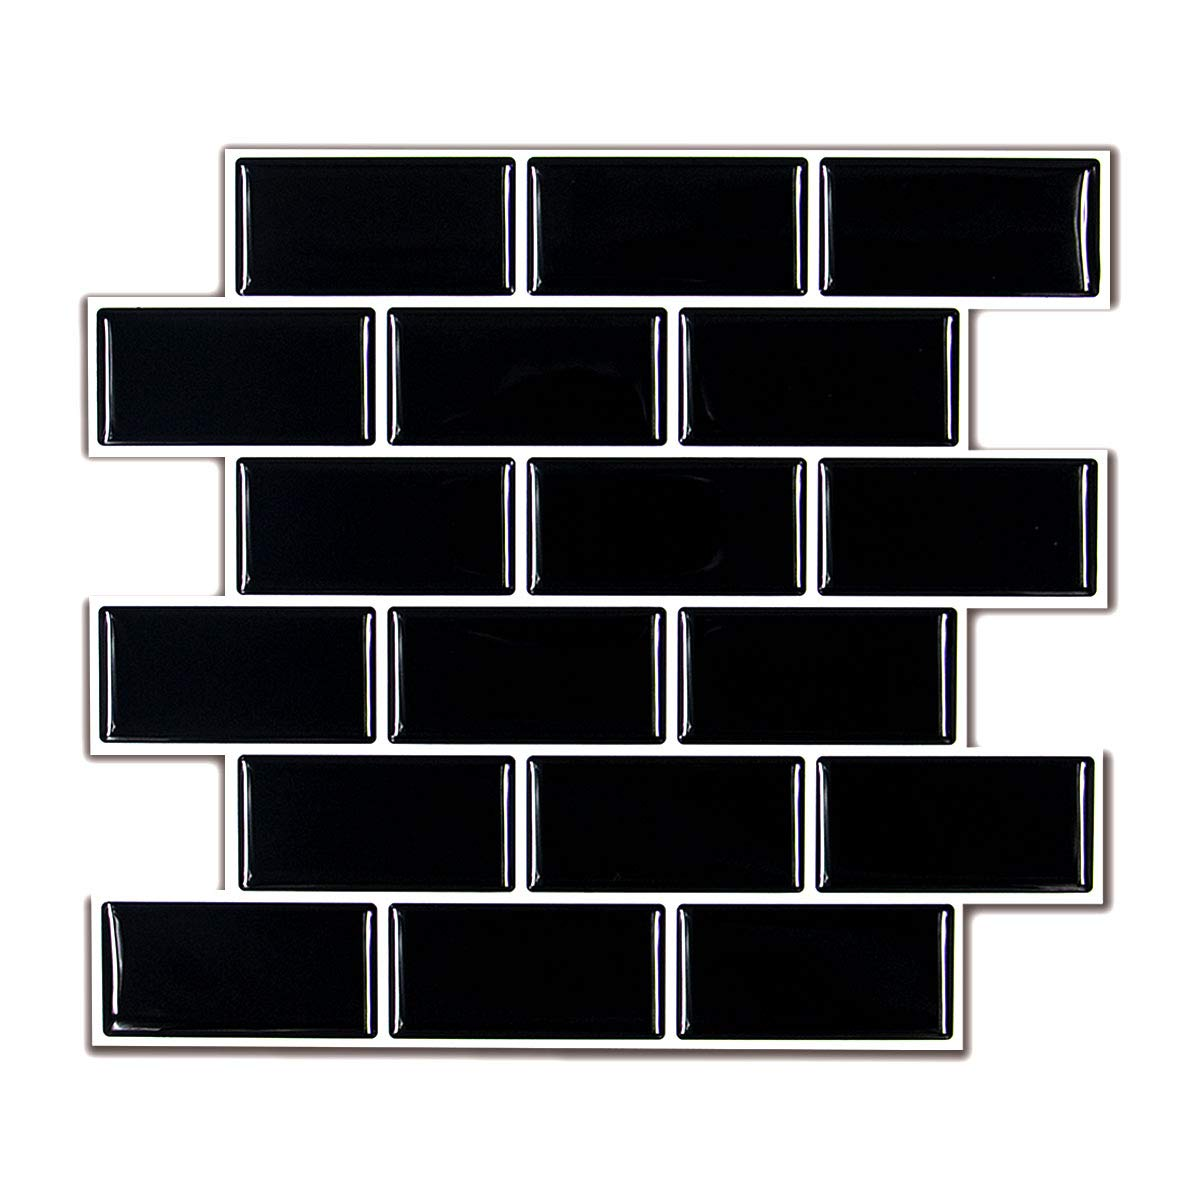 HUE DECORATION Peel and Stick Subway Tile Backsplash for Kitchen, Anti Mold Black Backsplash Tile 11.26'' x 10'' Pack of 6